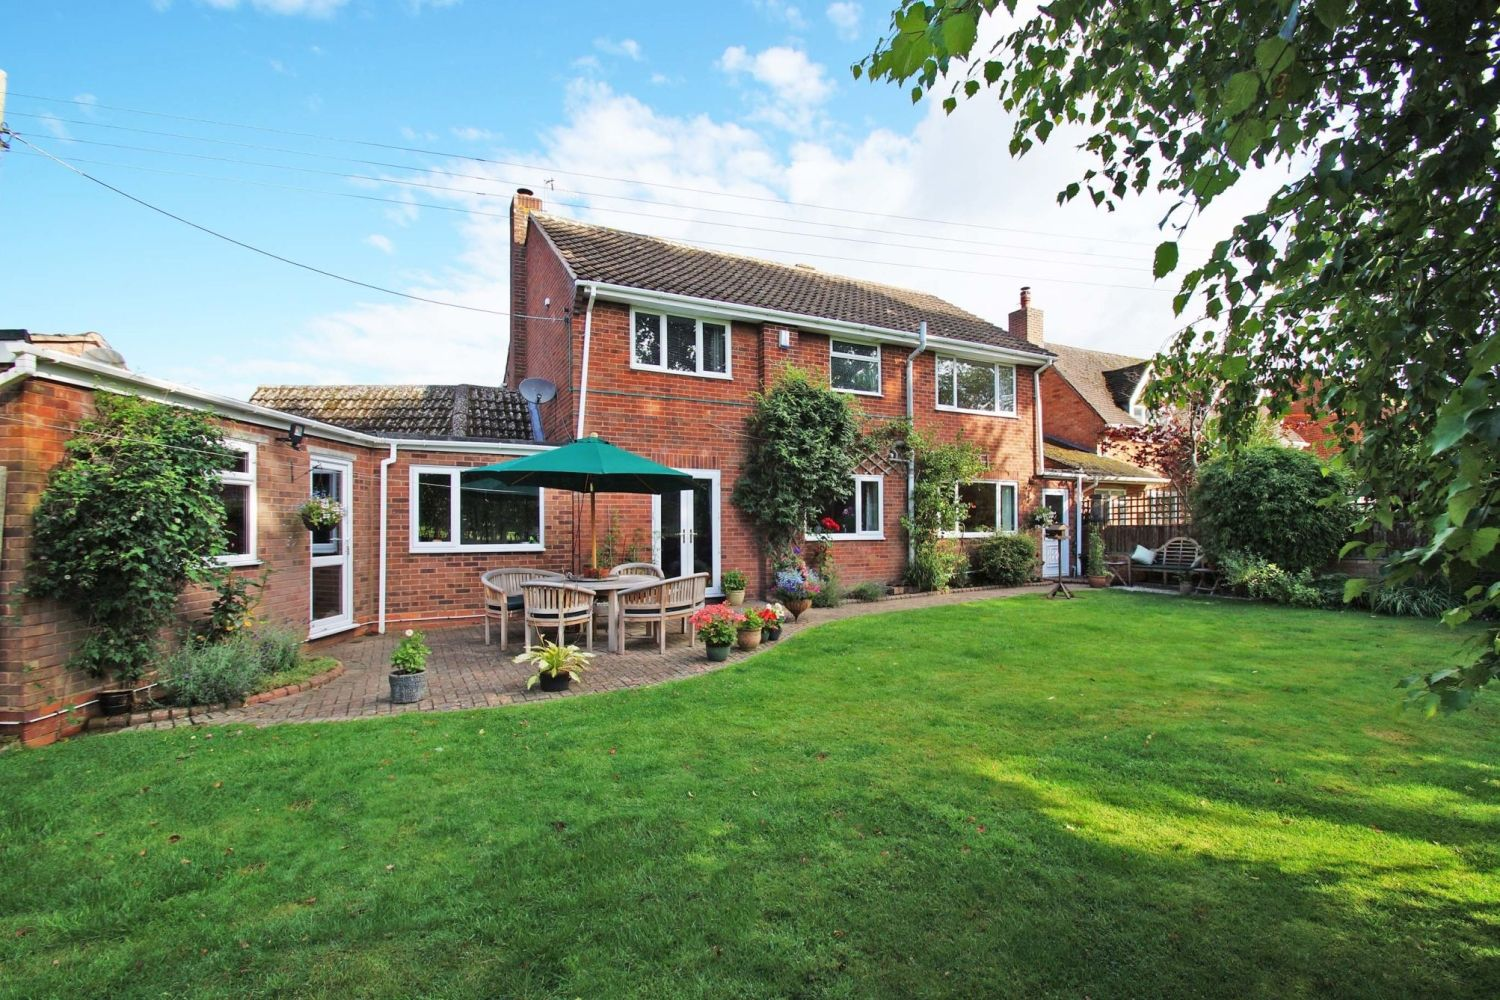 4 bed detached for sale in St. Richards Close, Wychbold 15